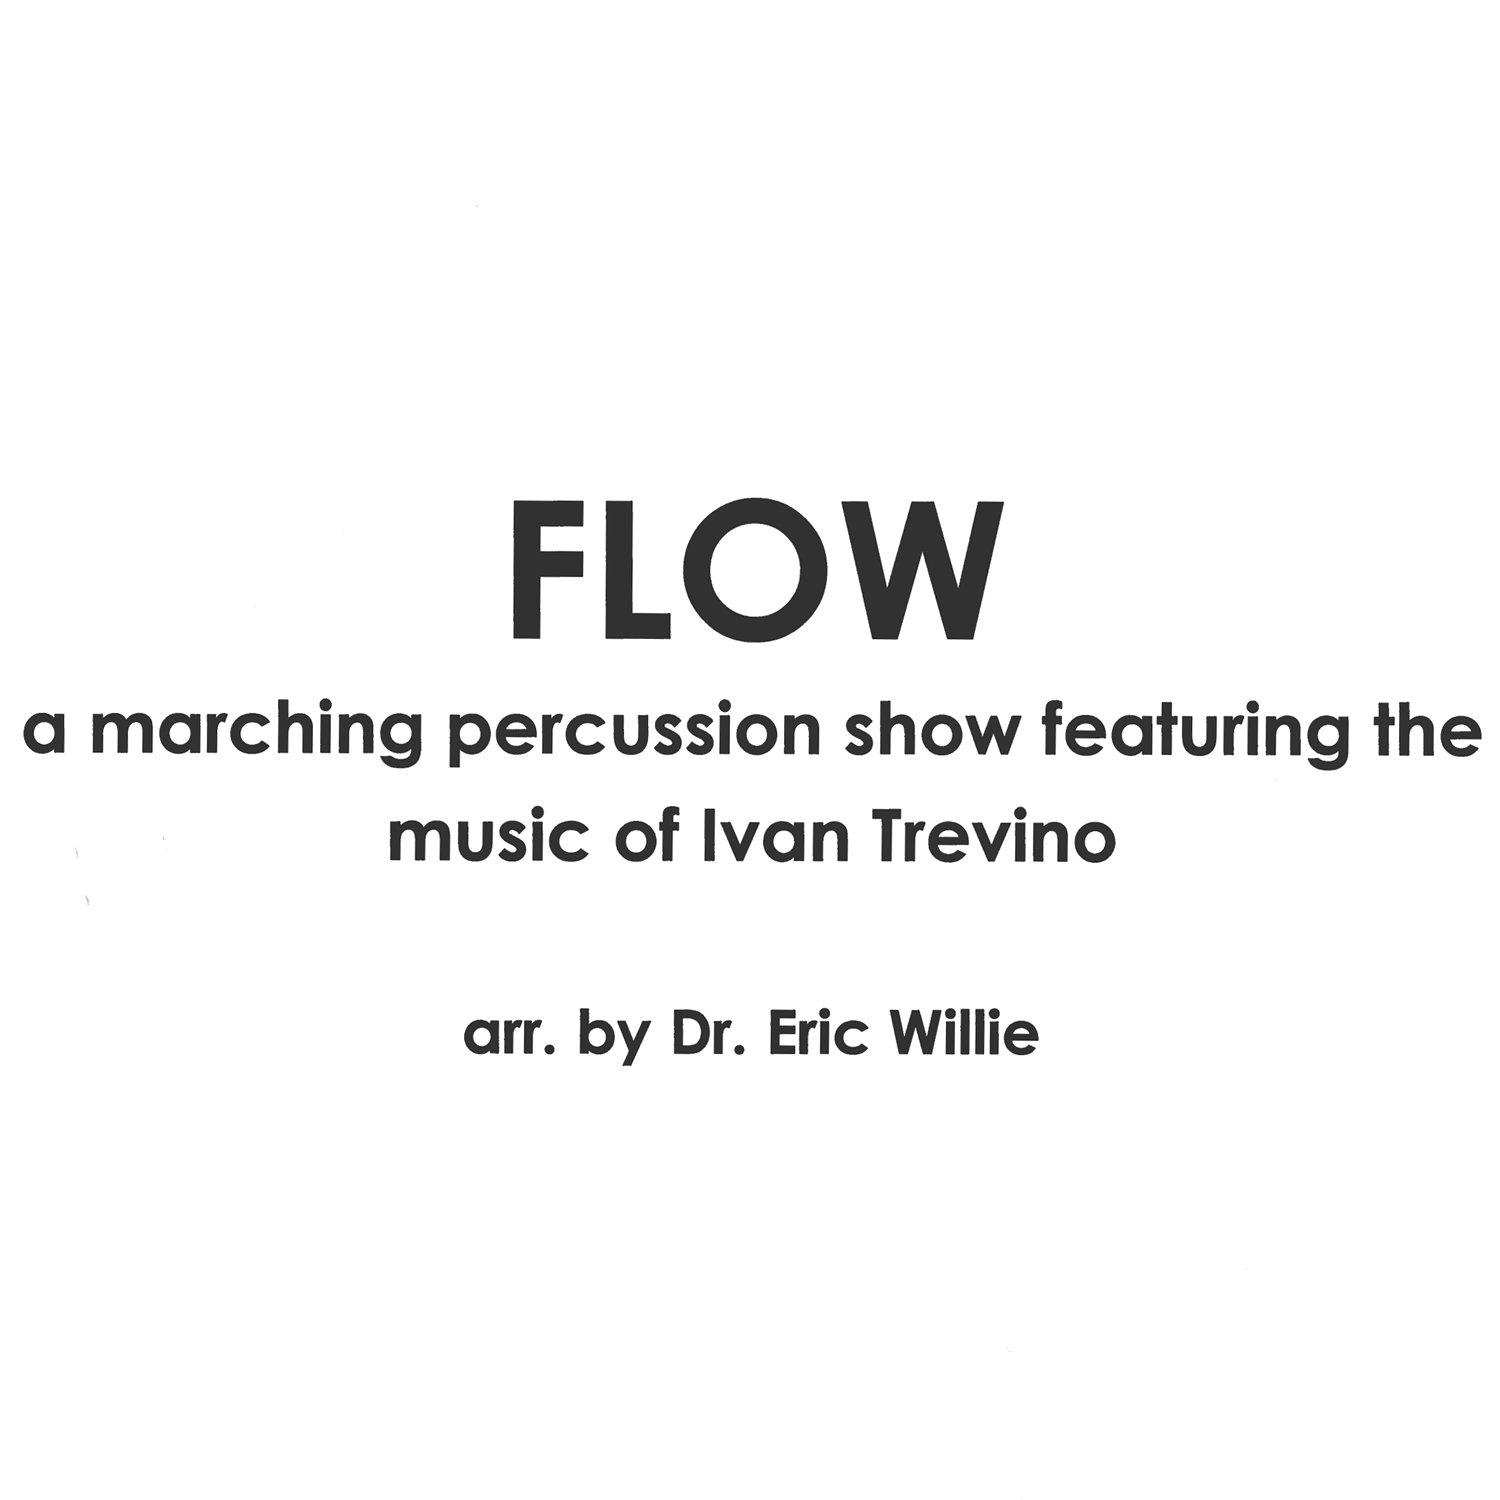 Flow: The Music of Ivan Trevino arr. Eric Willie